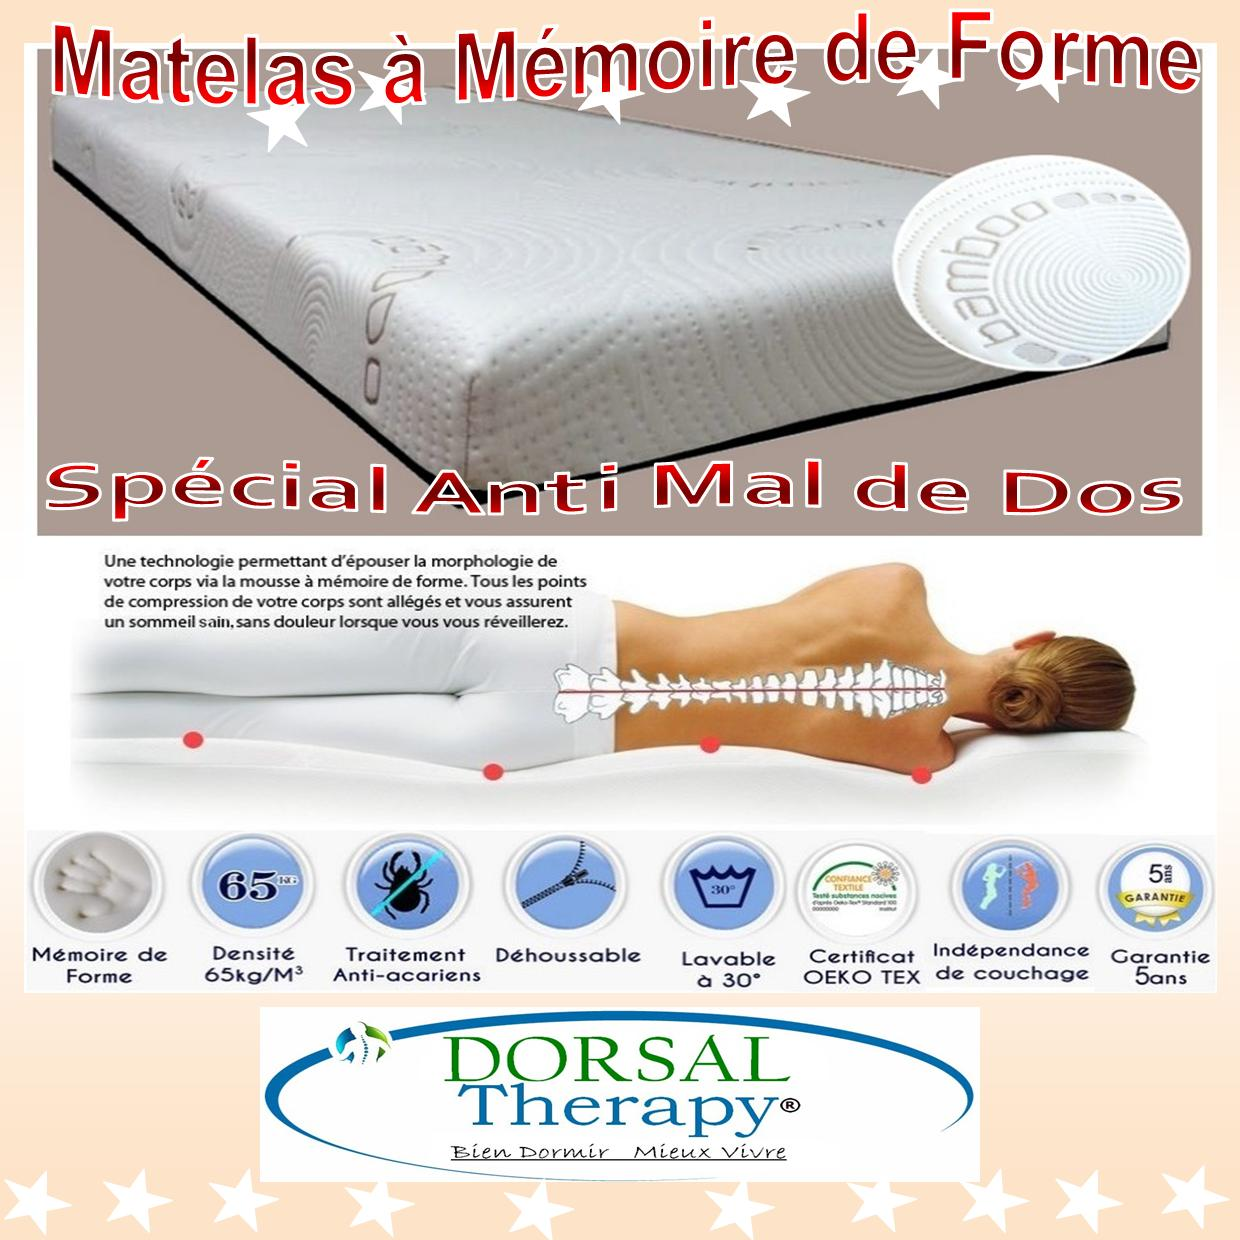 matelas a memoire de forme medical au maroc adresse t l phone avis itin raire. Black Bedroom Furniture Sets. Home Design Ideas